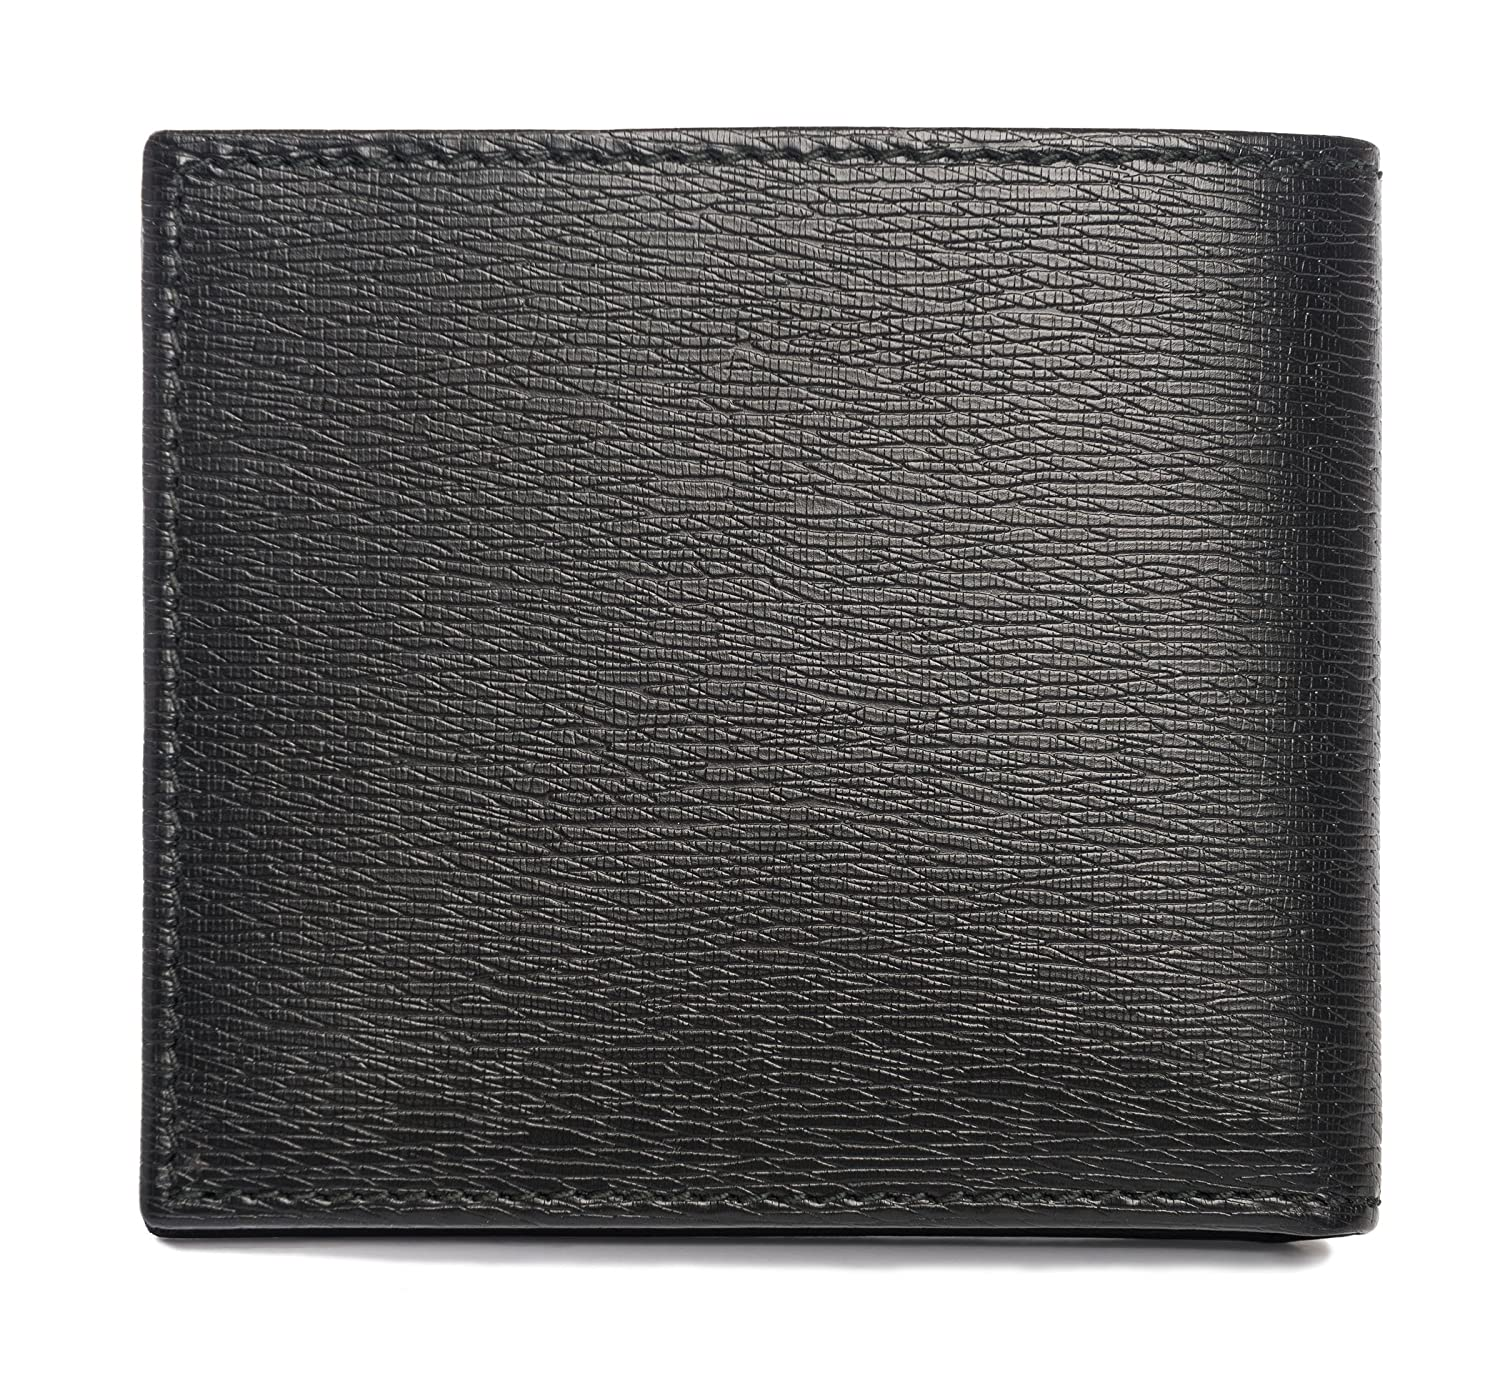 175ab4d6cc27 Amazon.com: Gucci Black Shanghai Leather Wallet Guccissima style Box New  Italy: Shoes